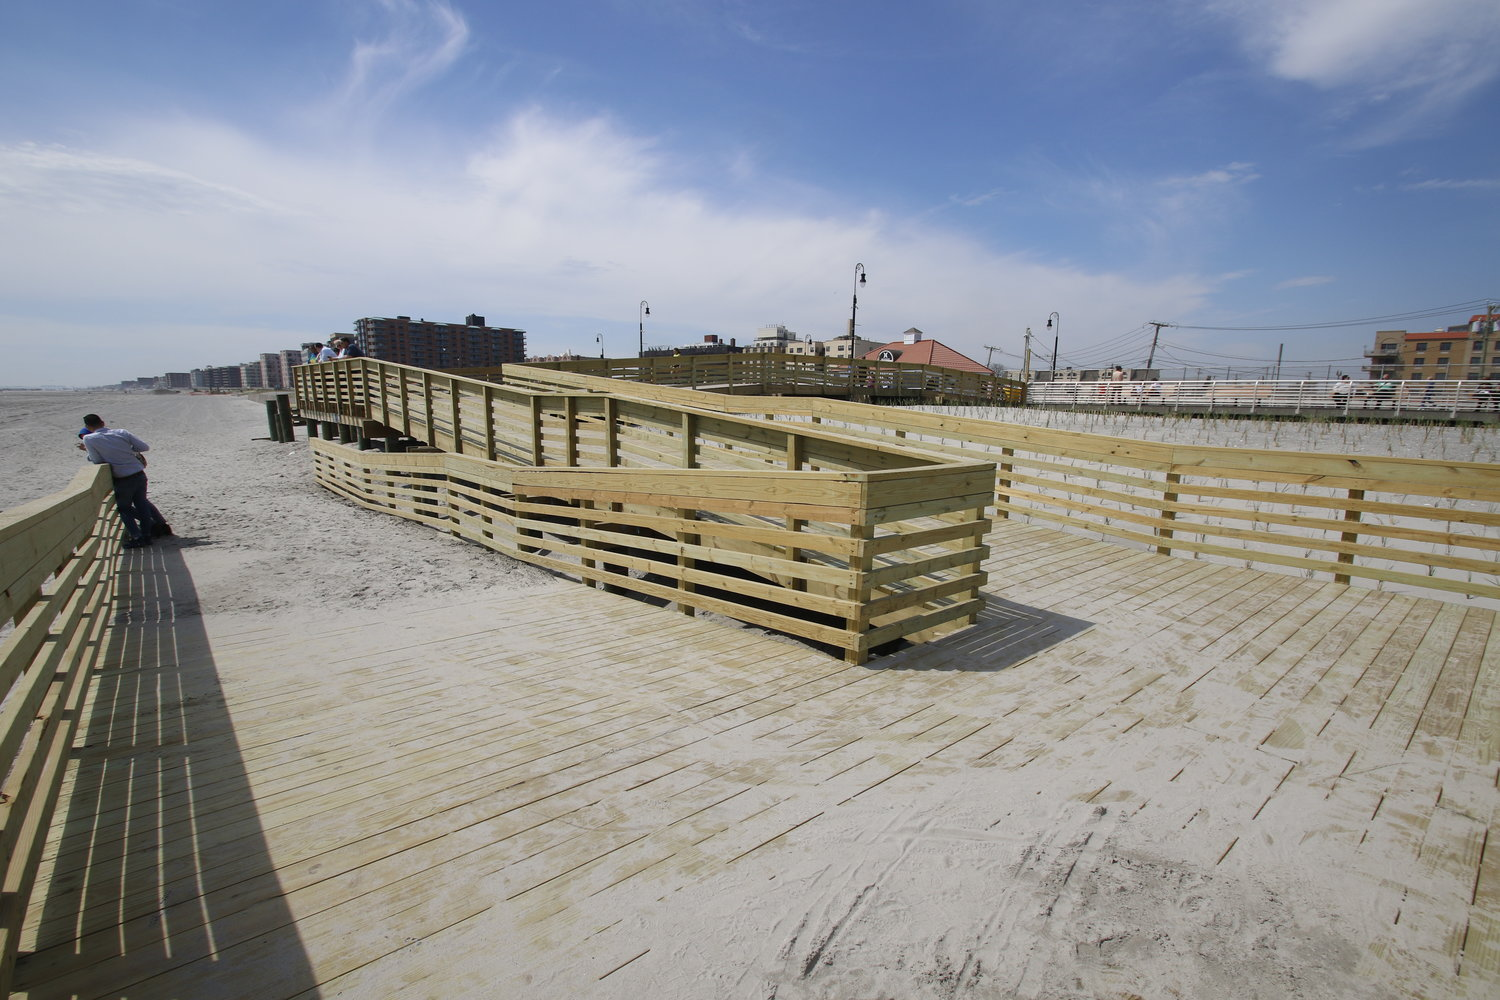 The coastal protection project features 25-foot-wide, 14-foot-high dunes running parallel to the boardwalk and 15 dune crossovers that connect the boardwalk to the beach. Officials said that the work is complete, except for certain crossovers and dune plantings.